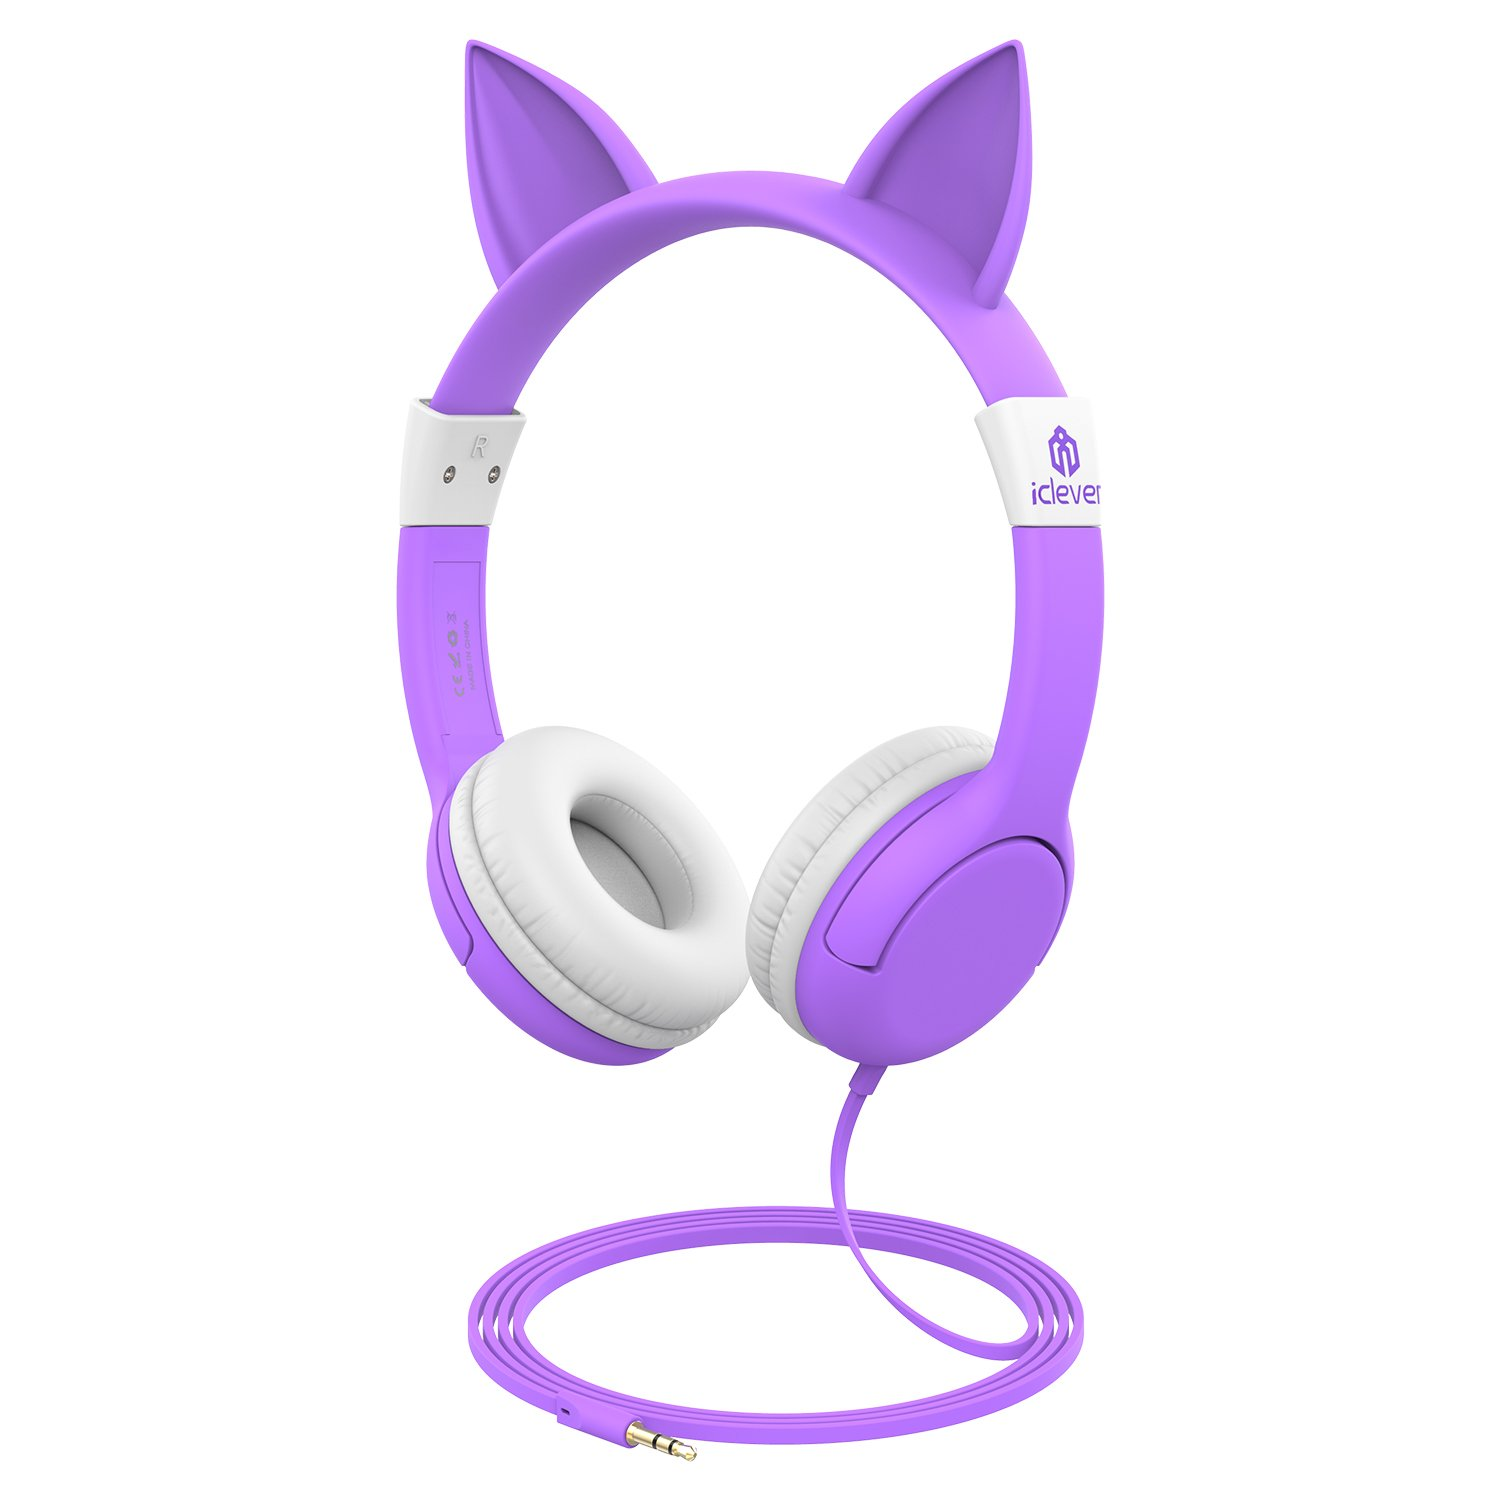 iClever Kids Headphones - Cat-Inspired Wired On-Ear Headphones for Kids, 85dB Volume Control, Food Grade Silicone, Lightweight, Cat-Inspired Design, 3.5mm Jack - Childrens Headphones, Purple by iClever